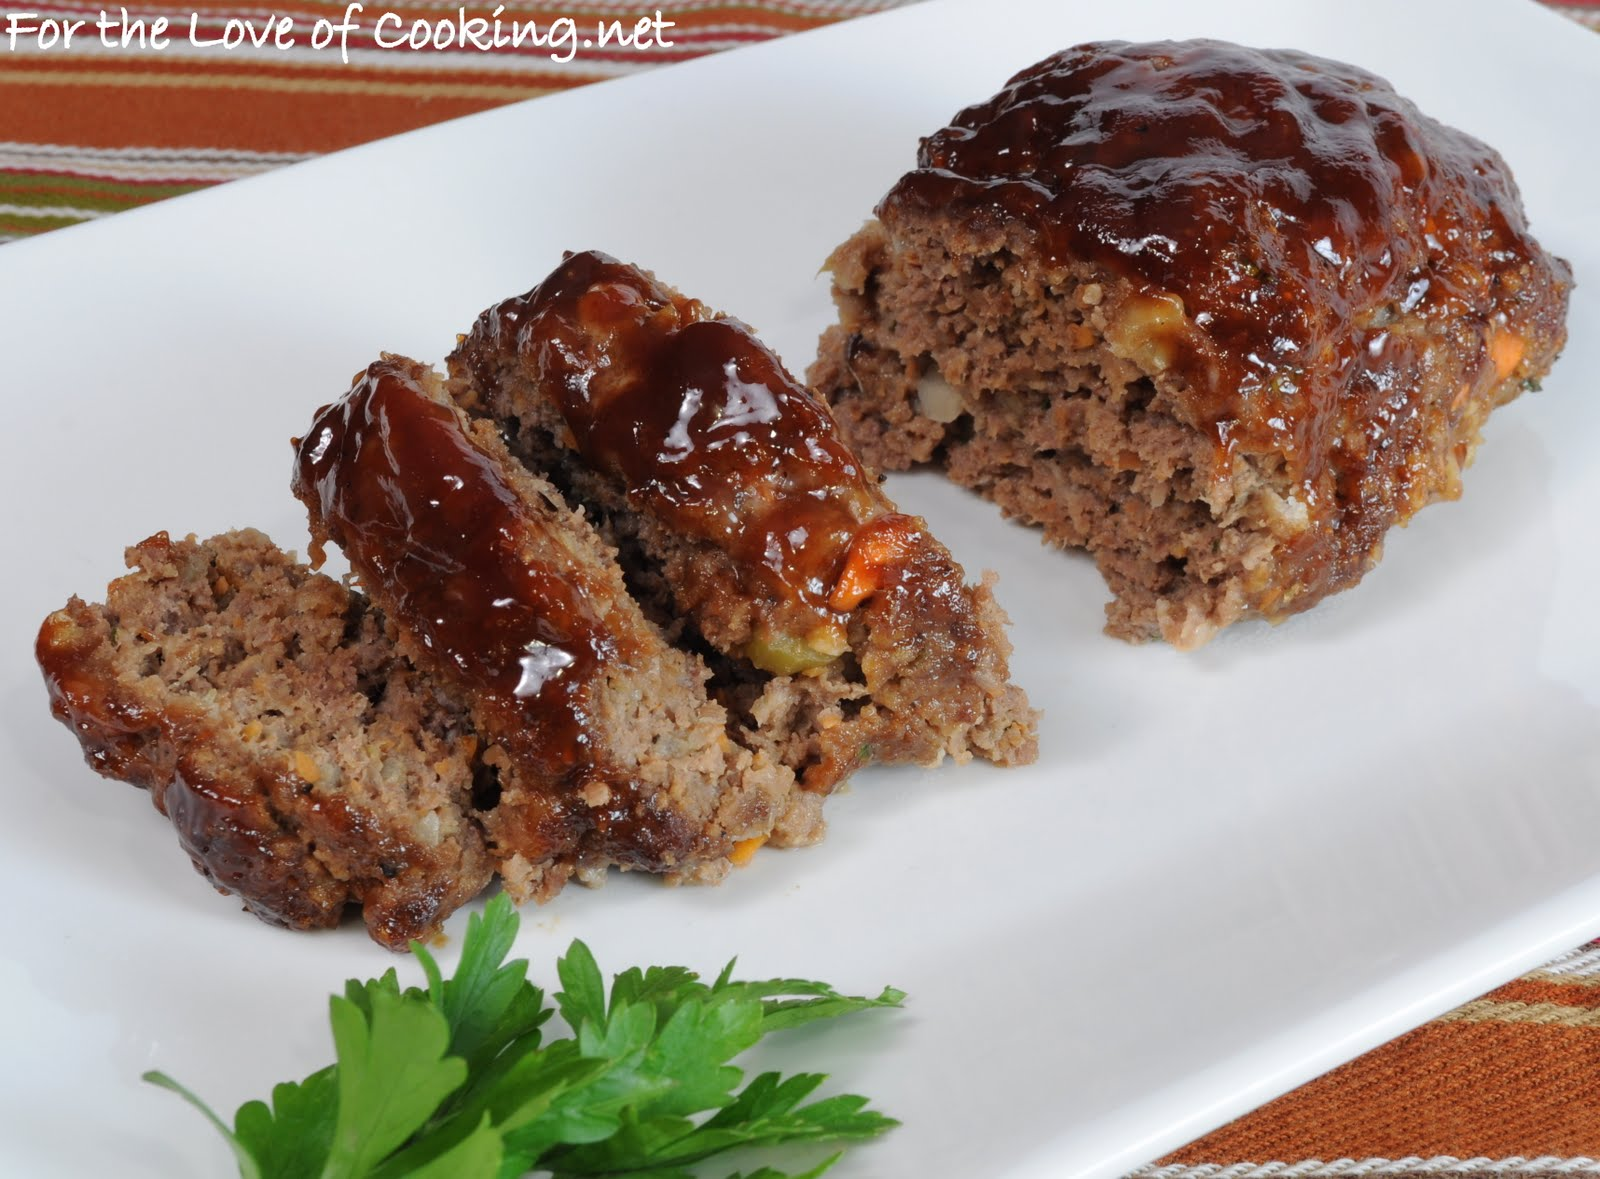 Meatloaf with Barbecue Glaze | For the Love of Cooking